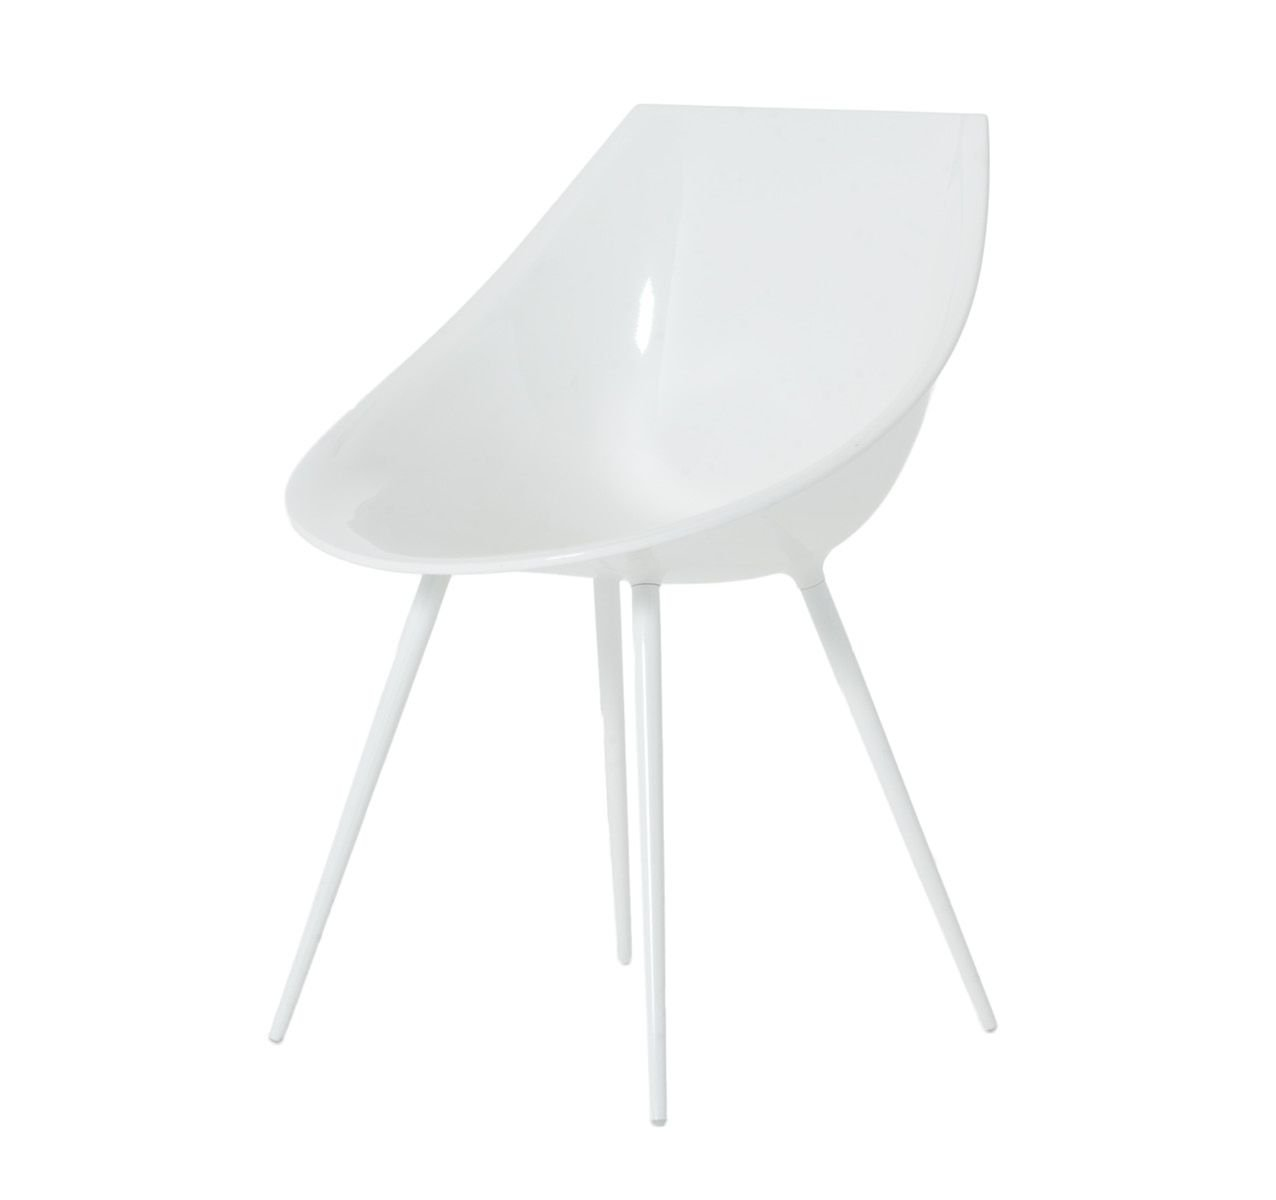 Lago Dining Chair from Driade